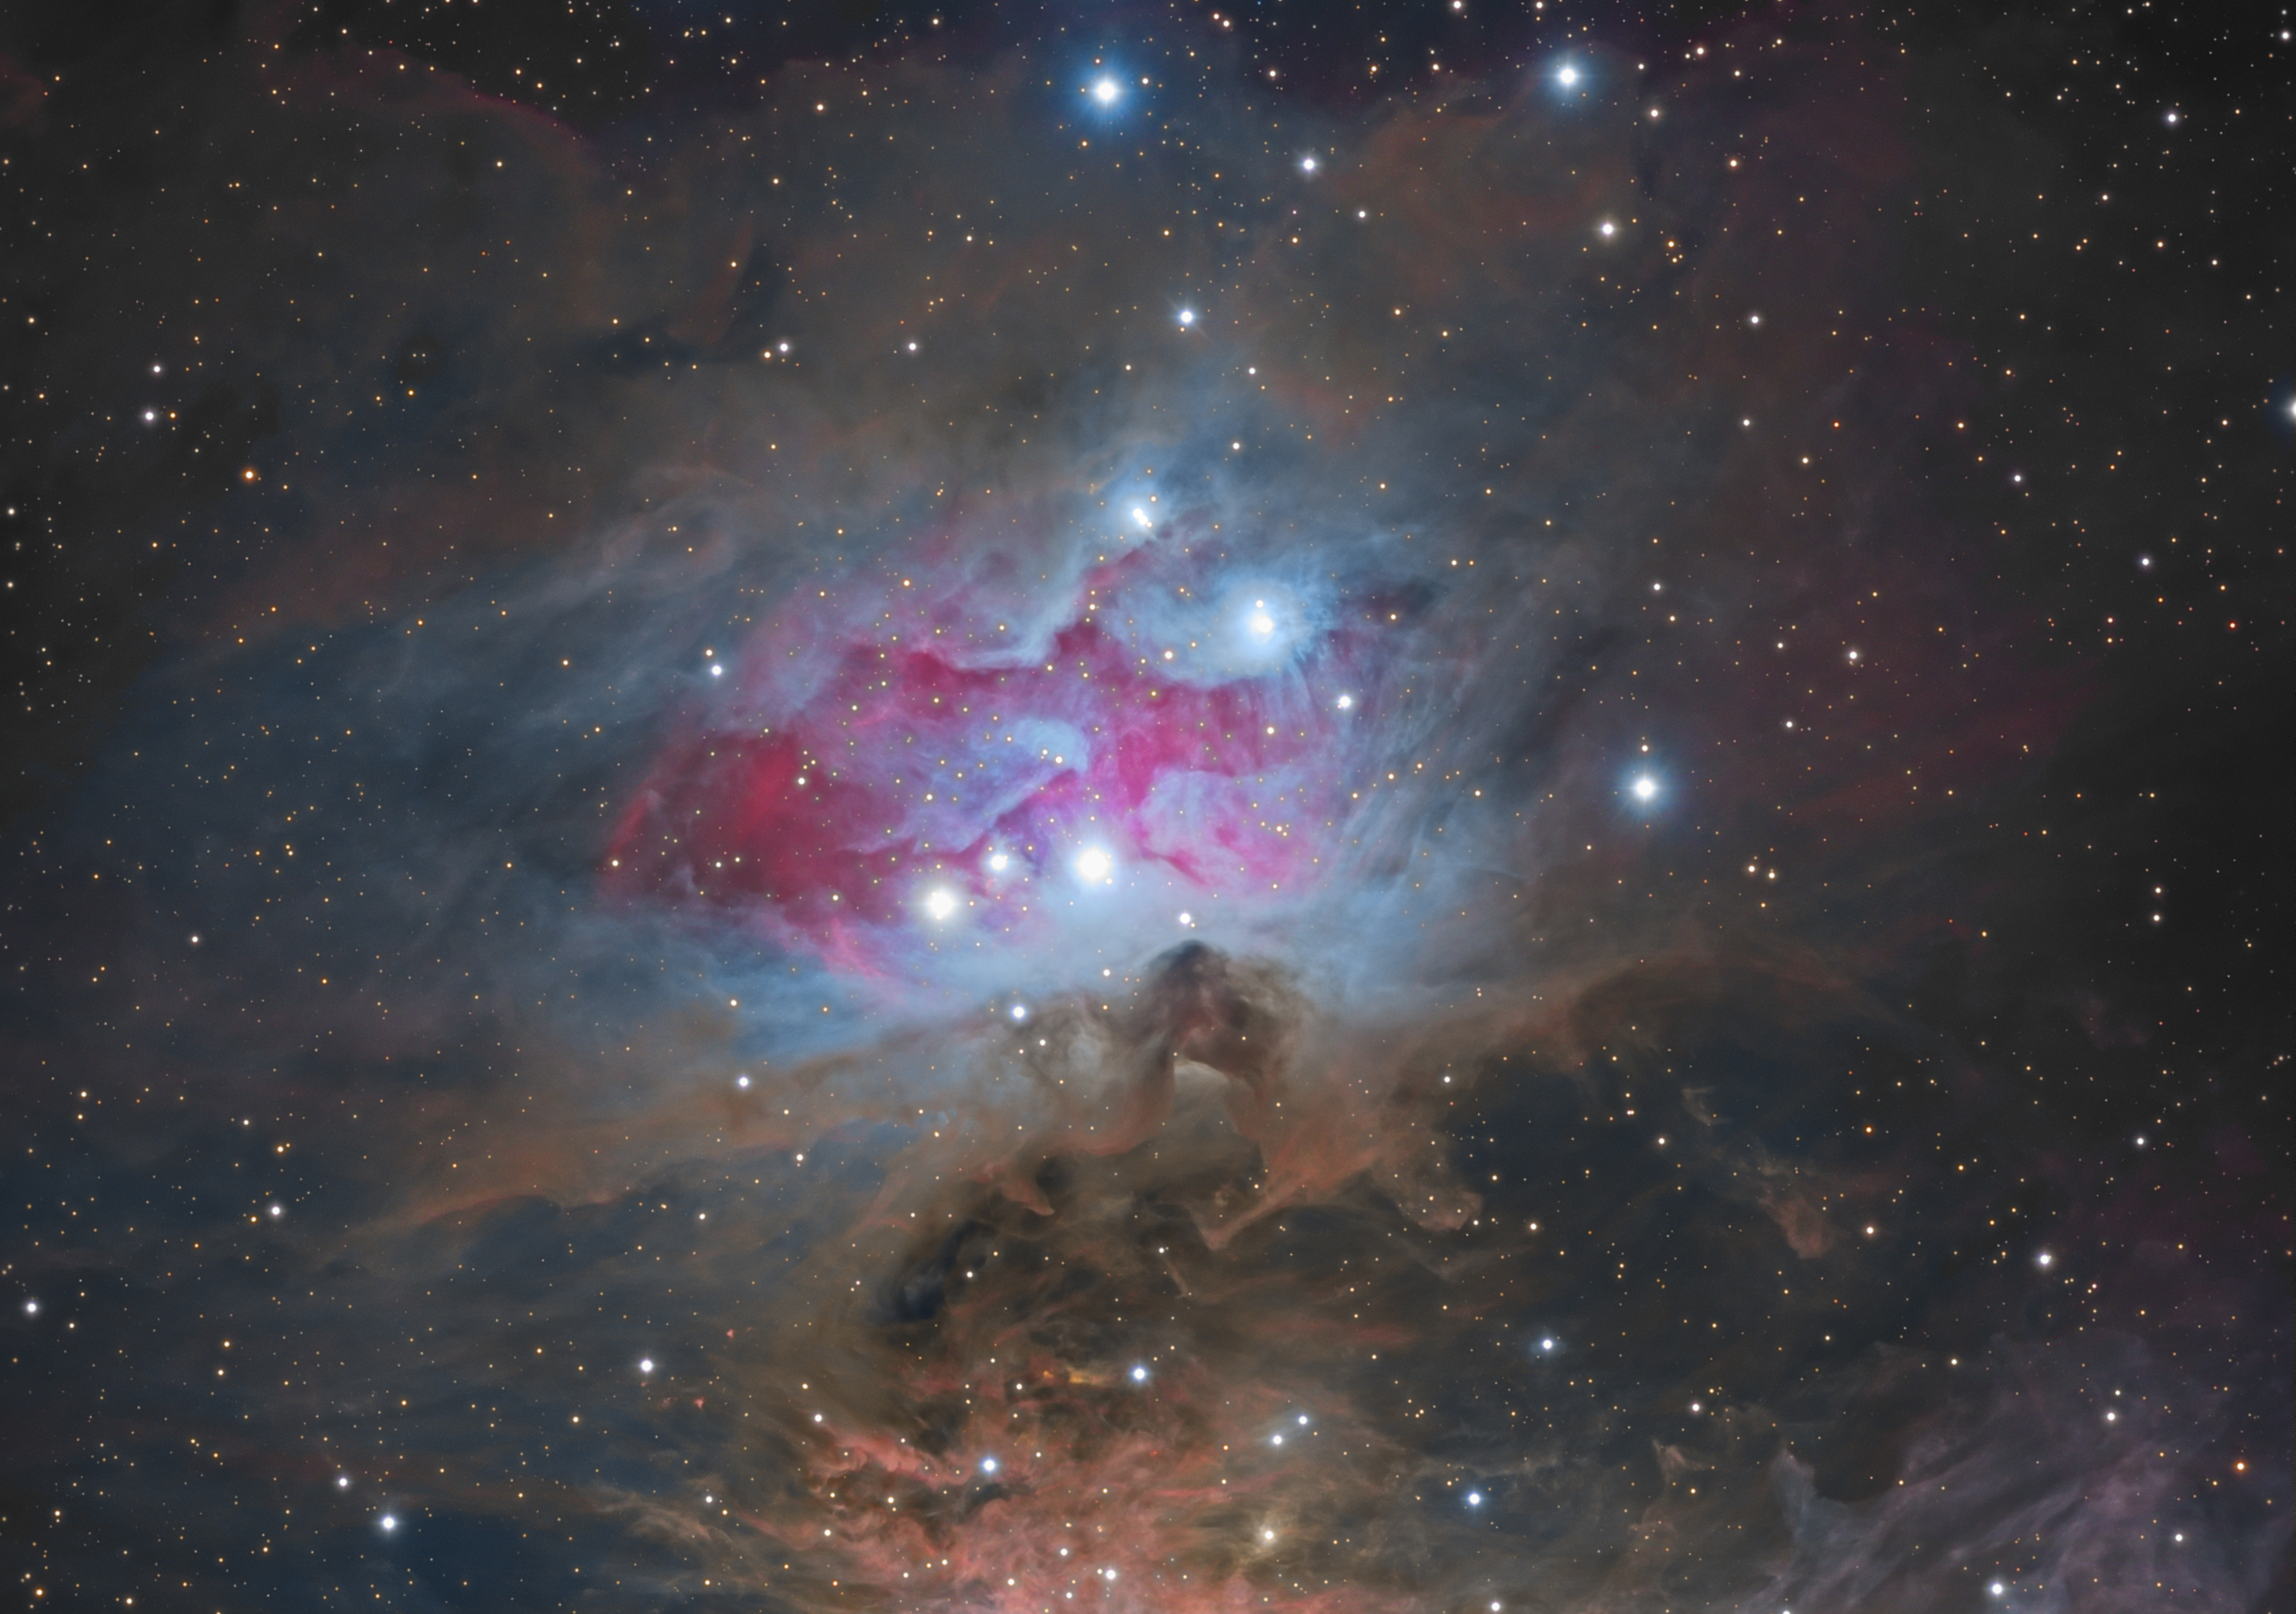 'Running Man' Races in Spectacular Nebula Photo